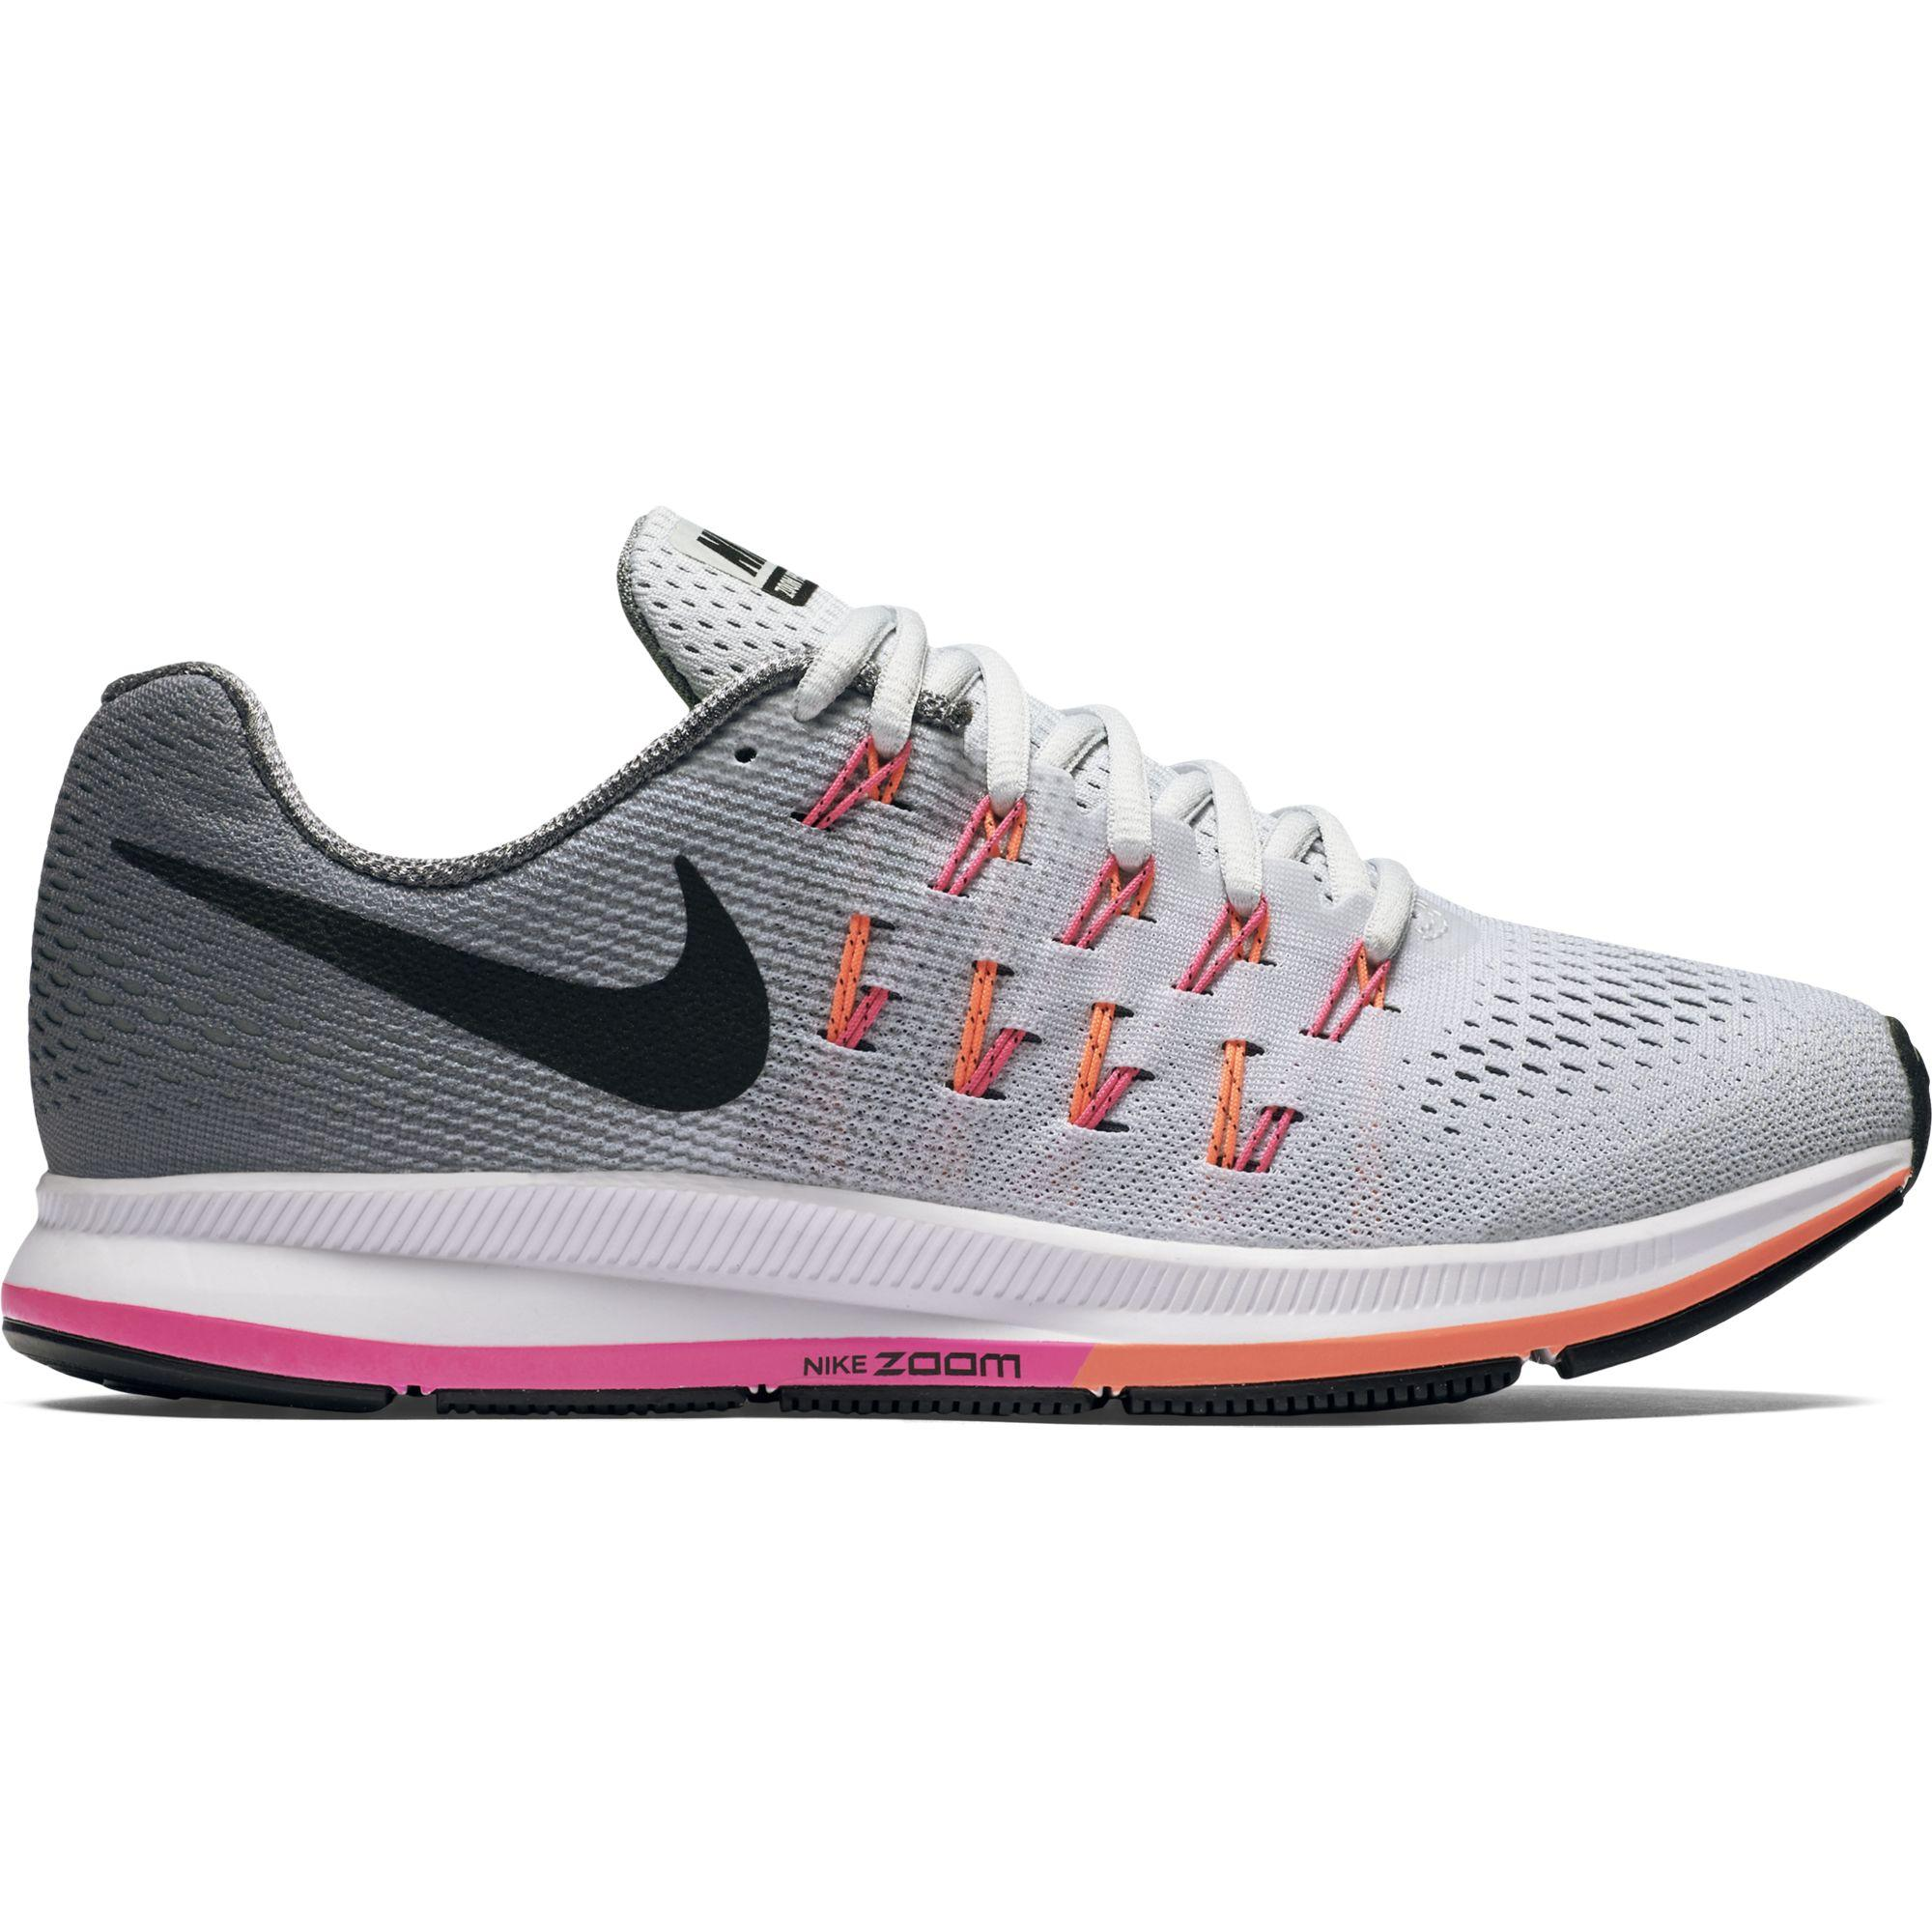 Feet Women'sNike Fleet Zoom Pegasus Air 33 fb6I7vYgym